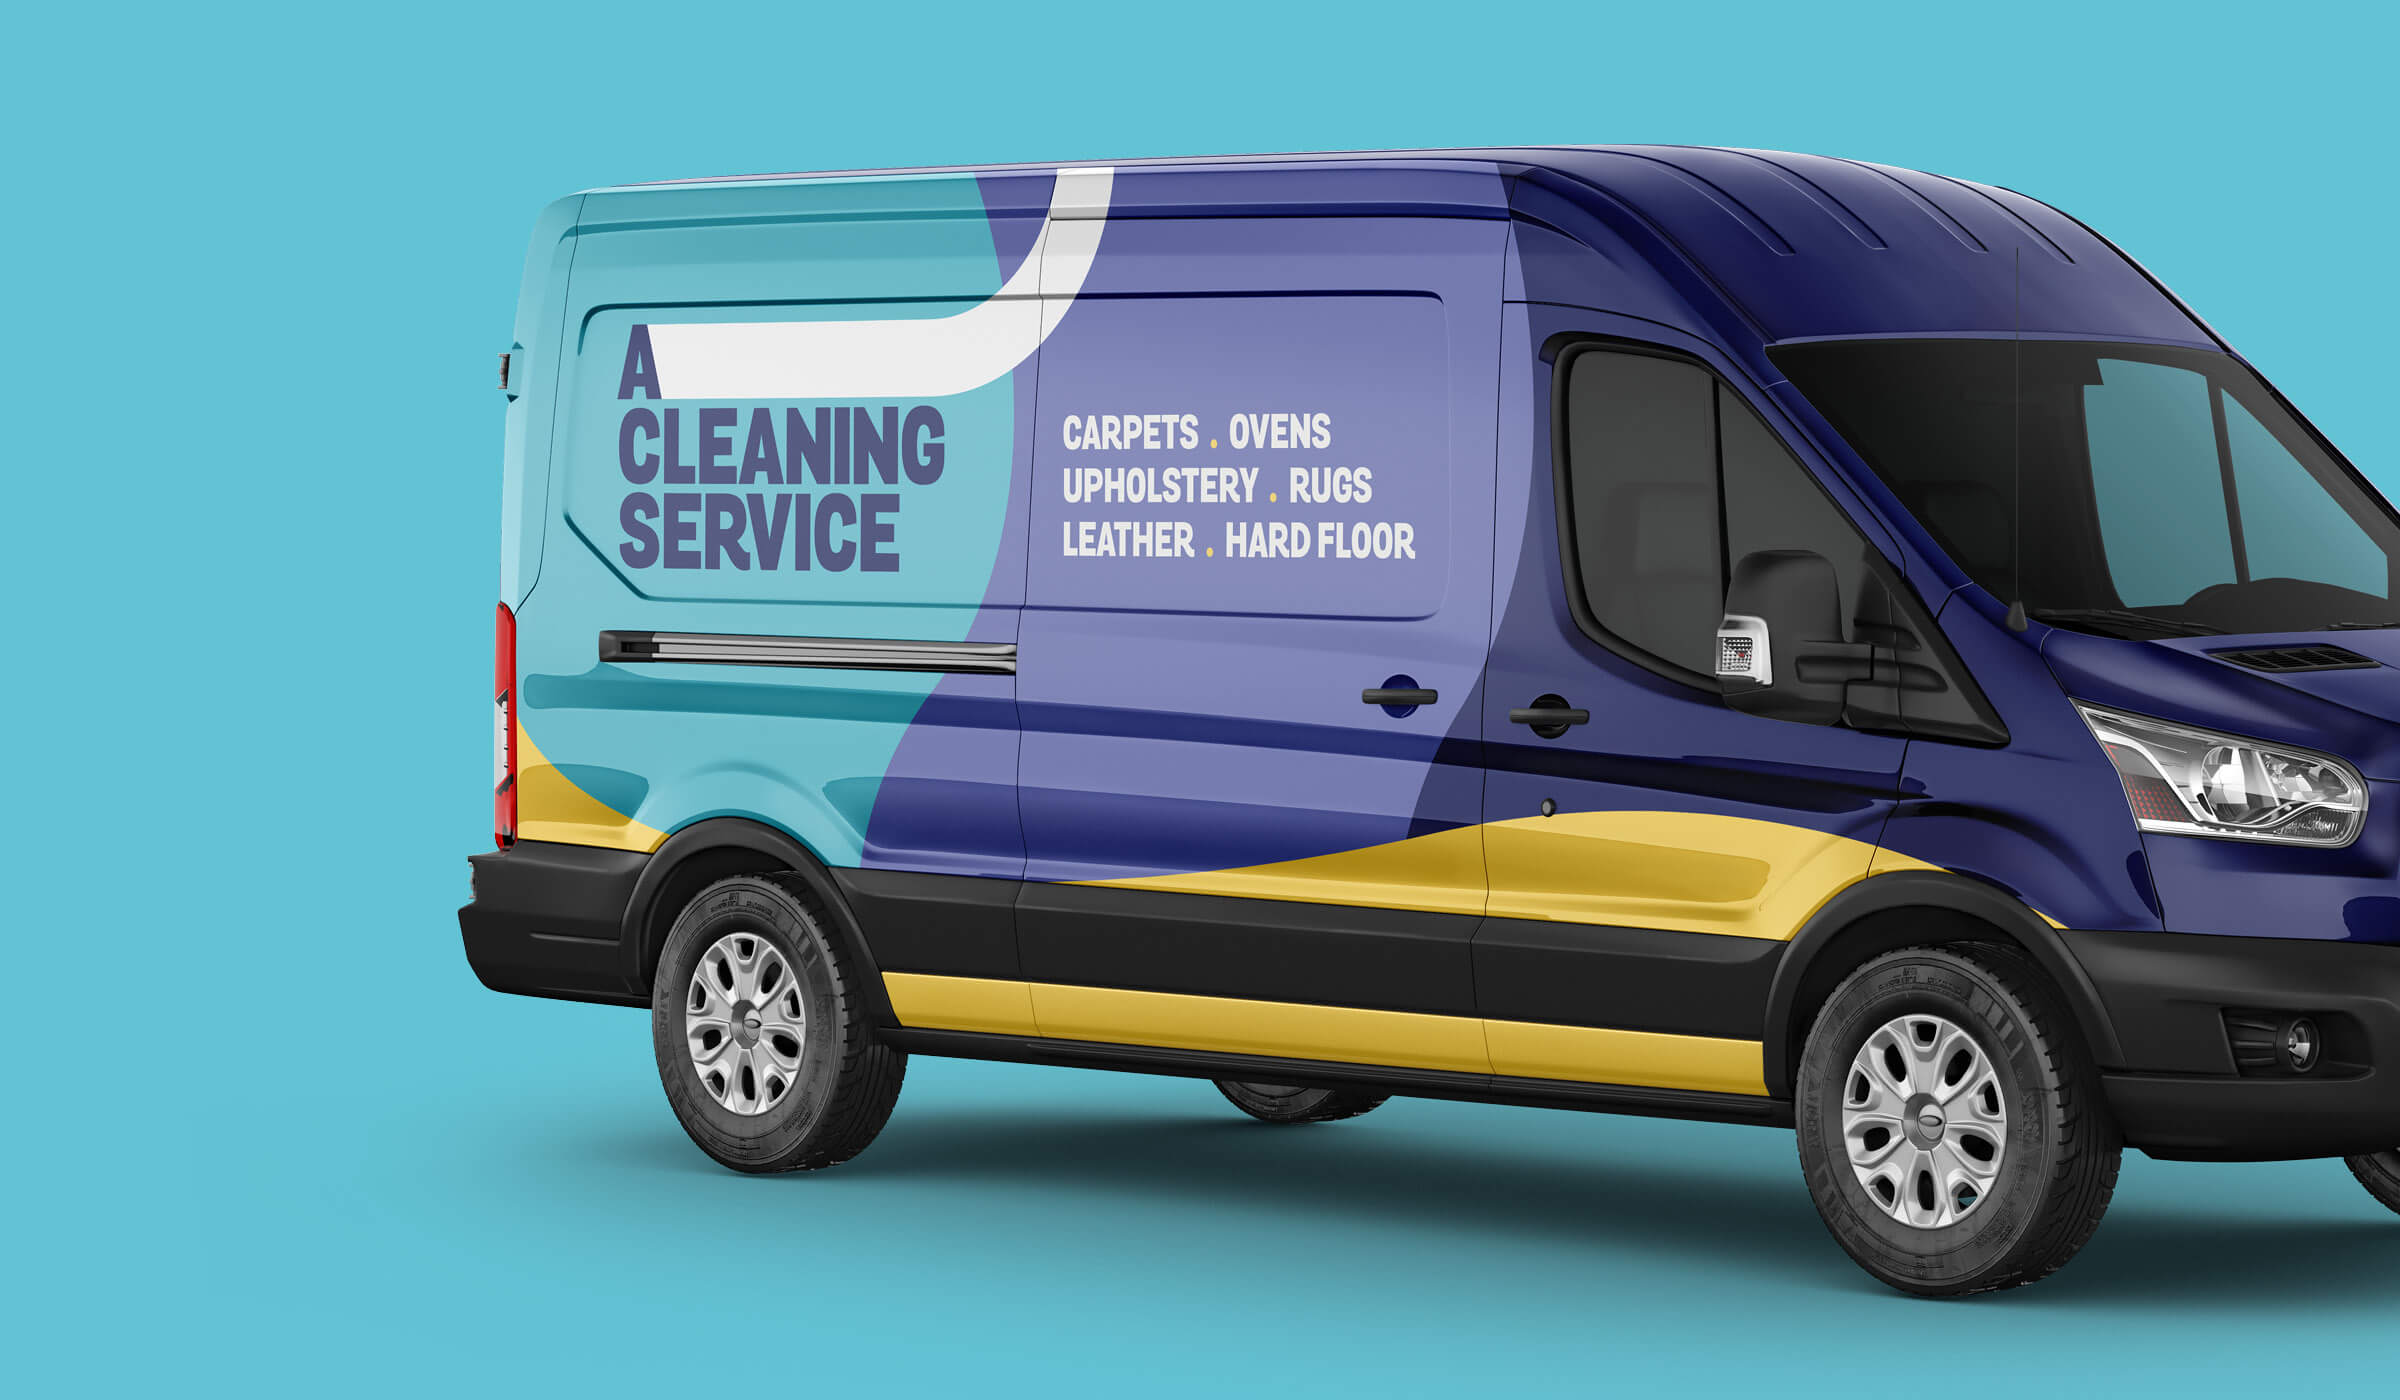 ACS van livery design